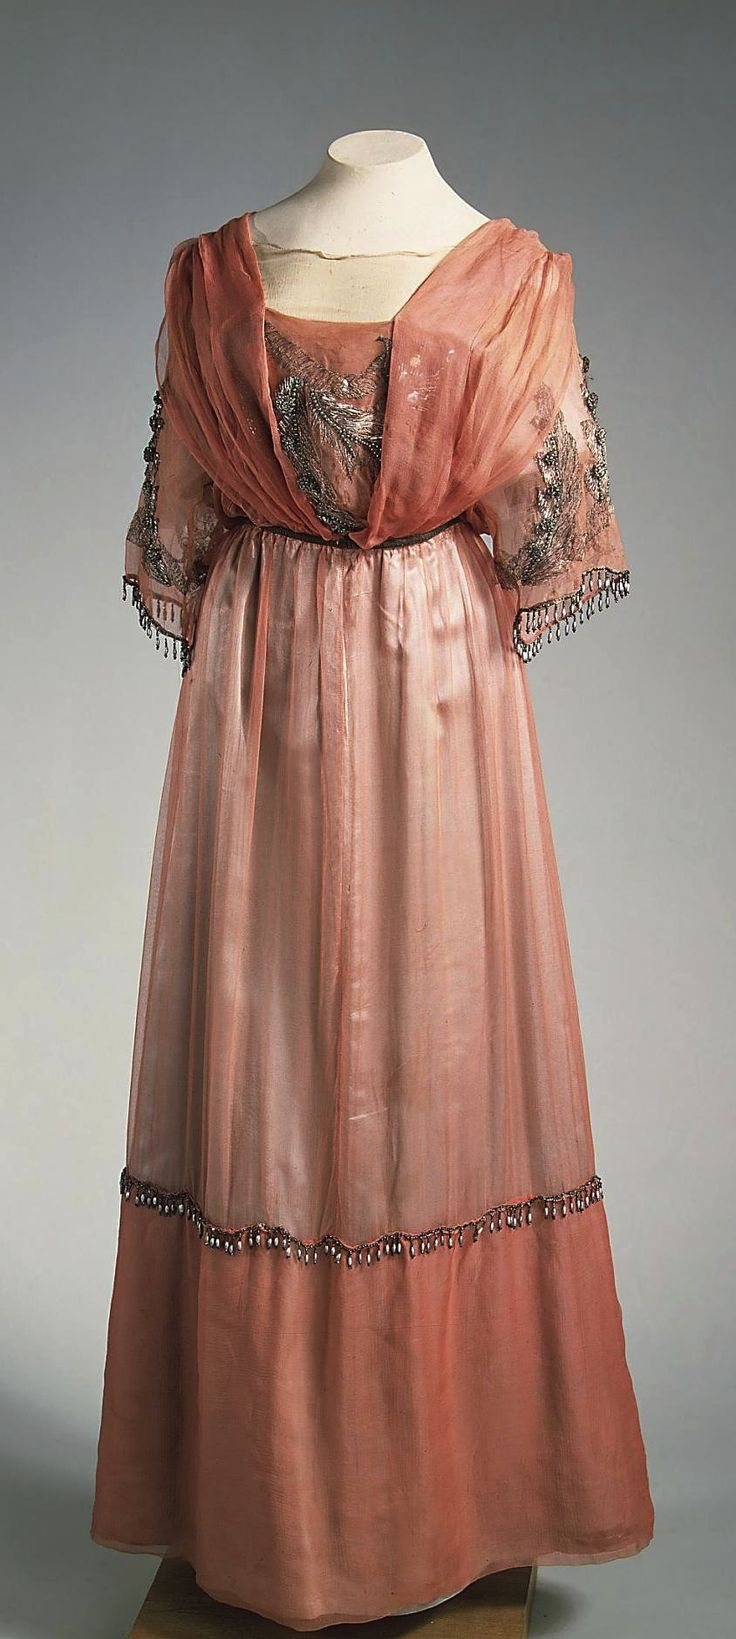 Evening Dress, Moscow, 1910s, at the State Hermitage Museum. Chiffon, satin, silk thread and glass beads. See: http://www.hermitagemuseum.org/wps/portal/hermitage/digital-collection/08.+Applied+Arts/1521128/?lng=en